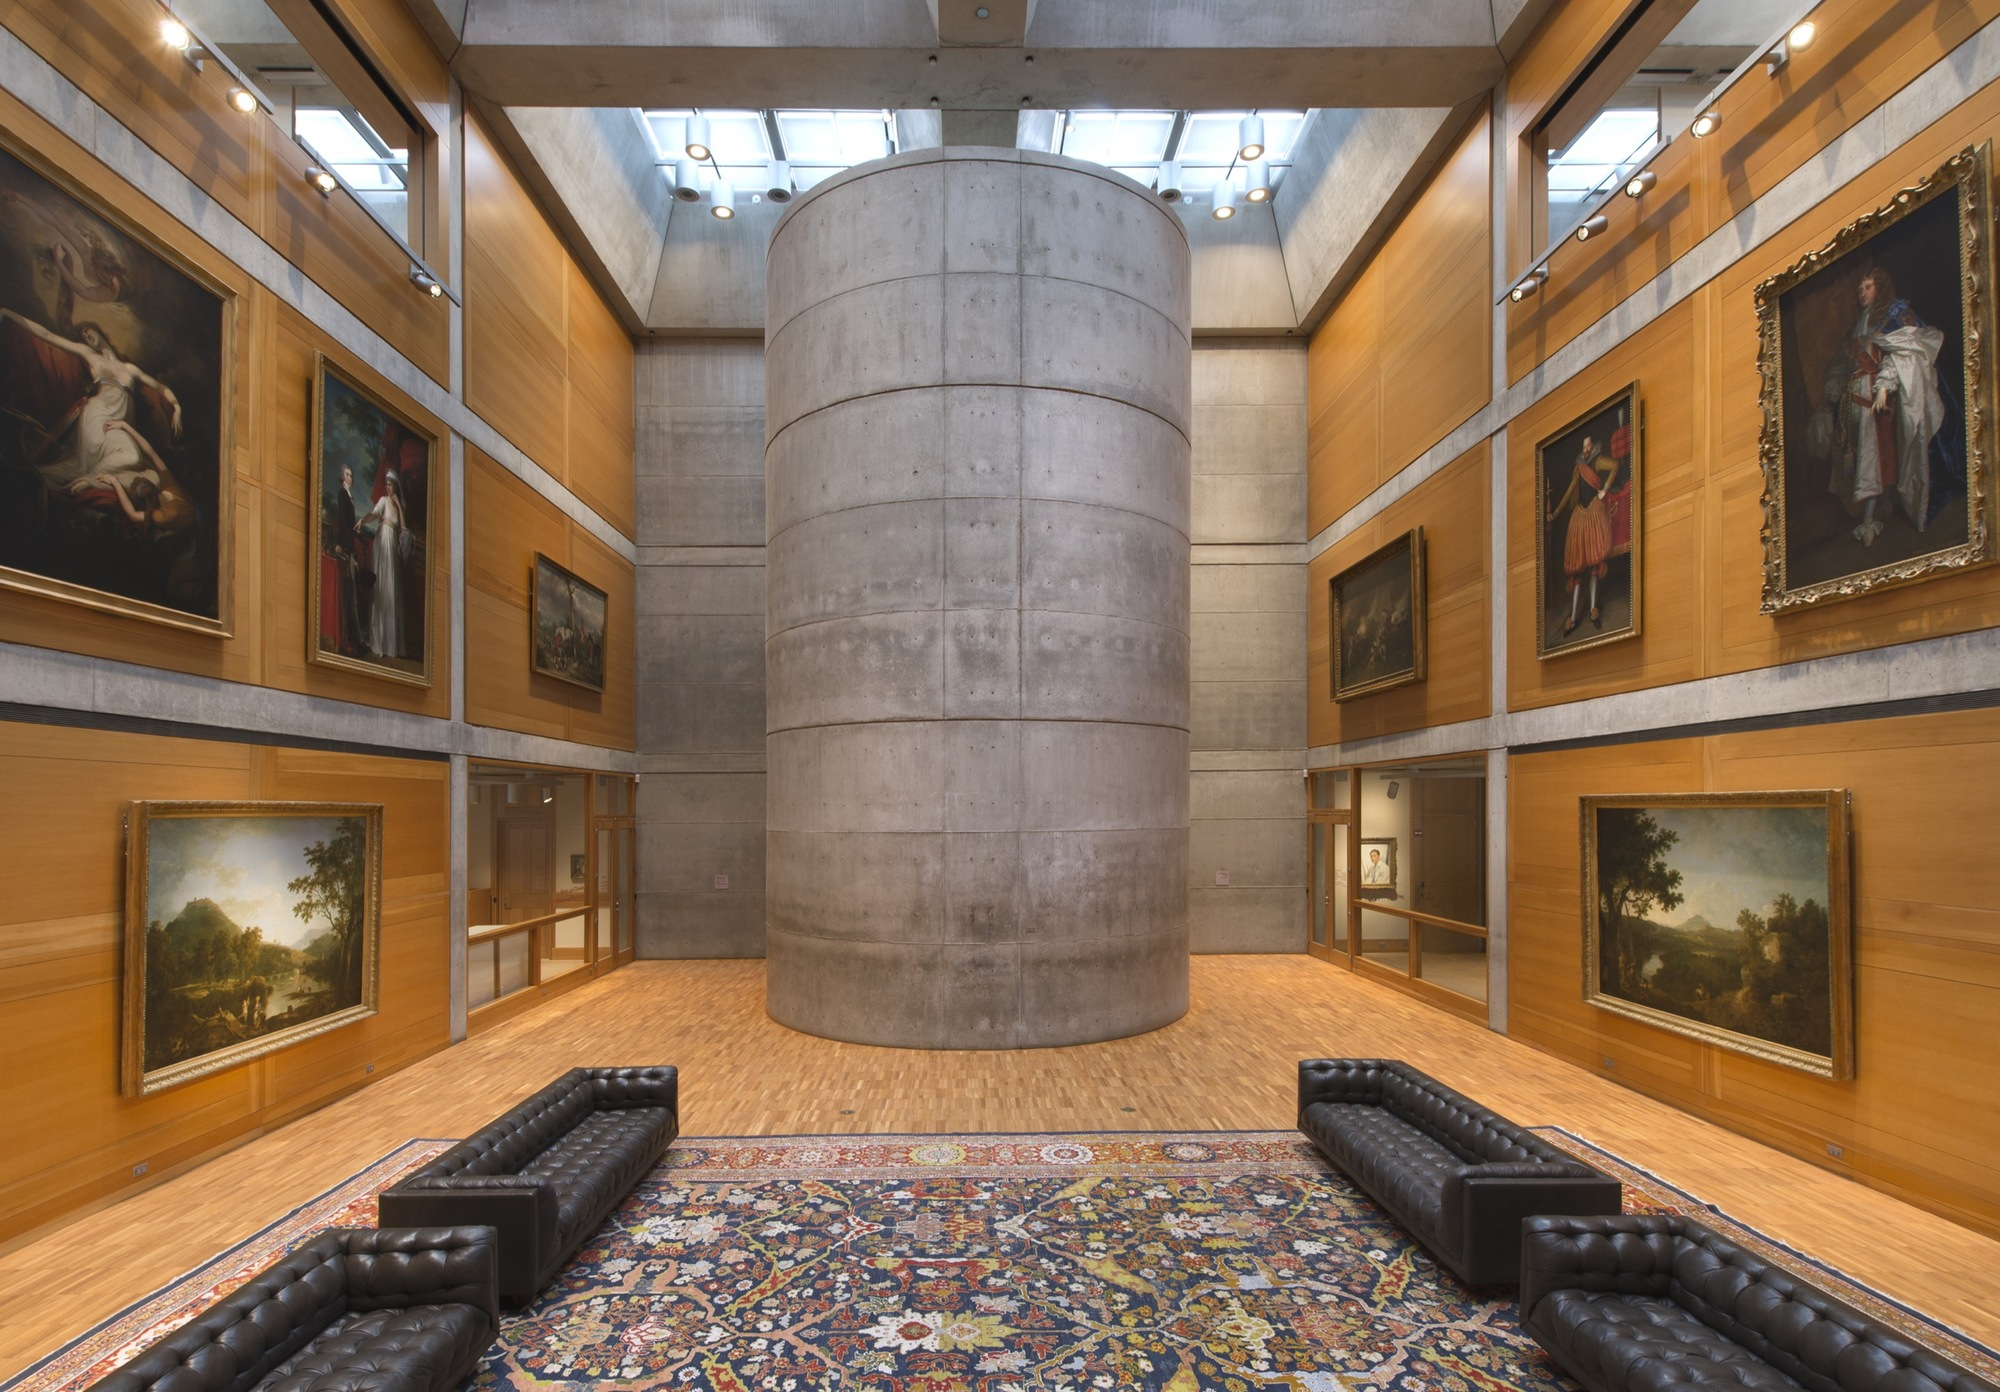 Louis kahn 39 s yale center for british art reopens after Art gallery interior design